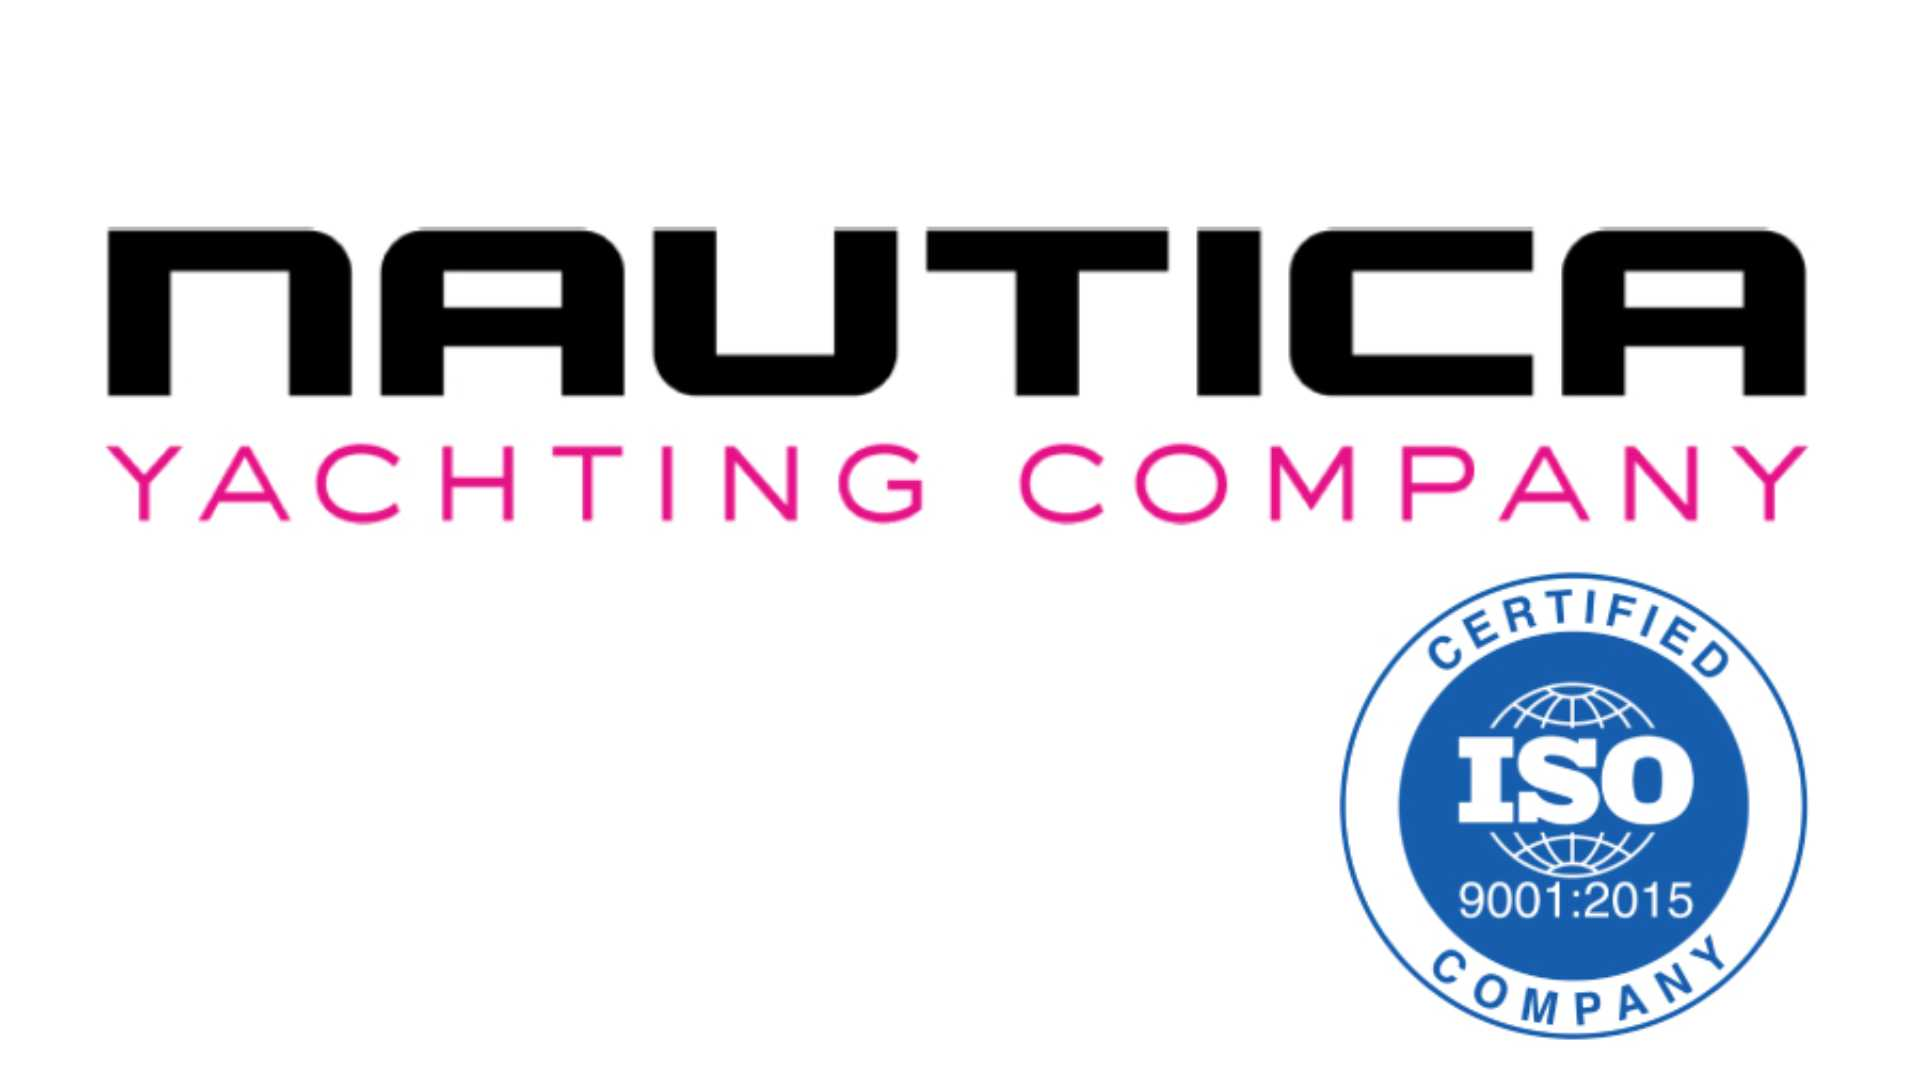 Nautica Yachting Company awarded ISO 9001:2015 certification.